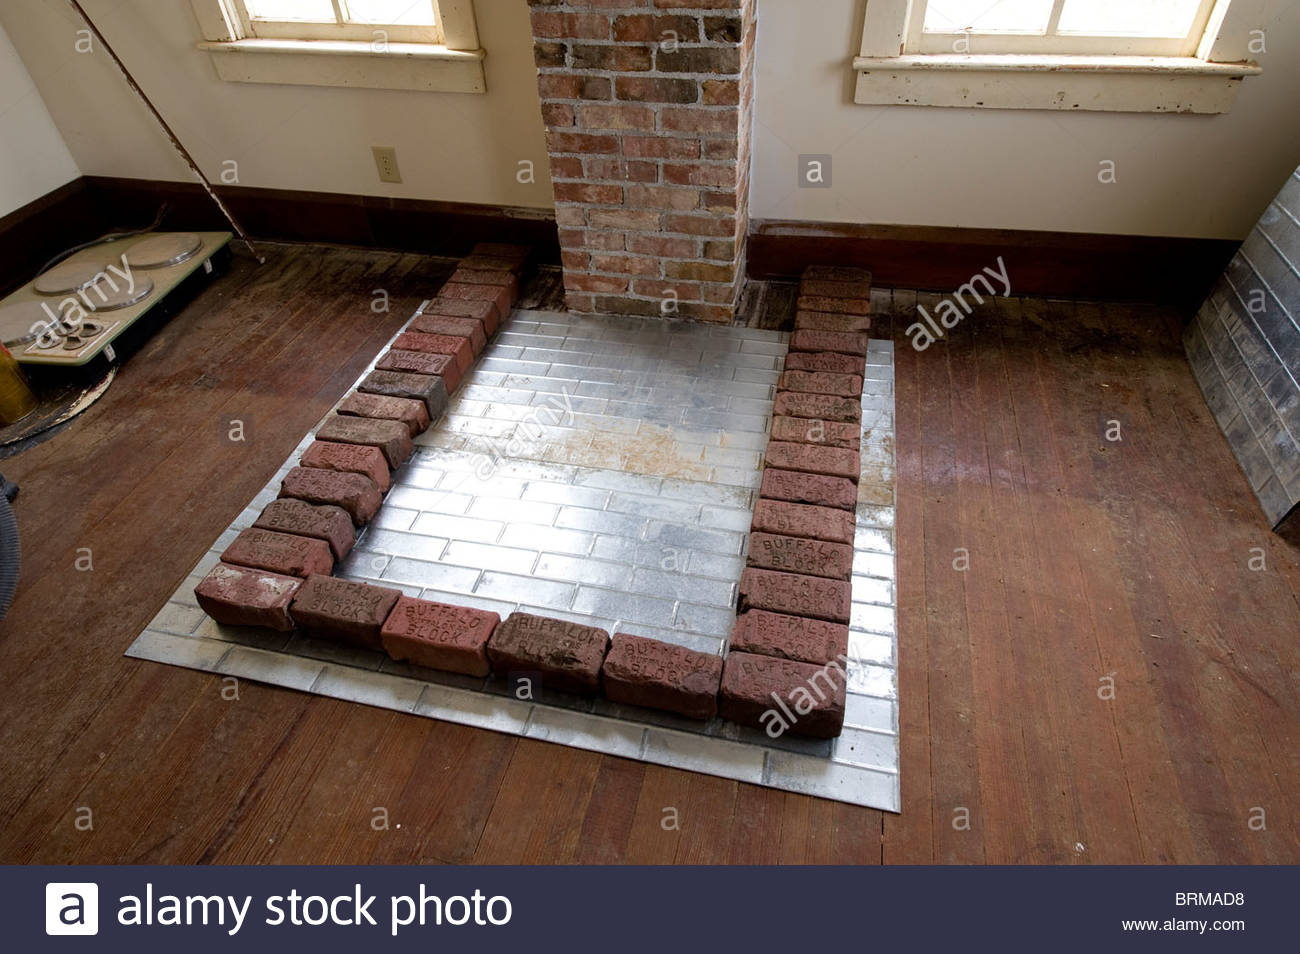 The base of a wood stove being built in an old farmhouse in Nebraska. - Stock Image